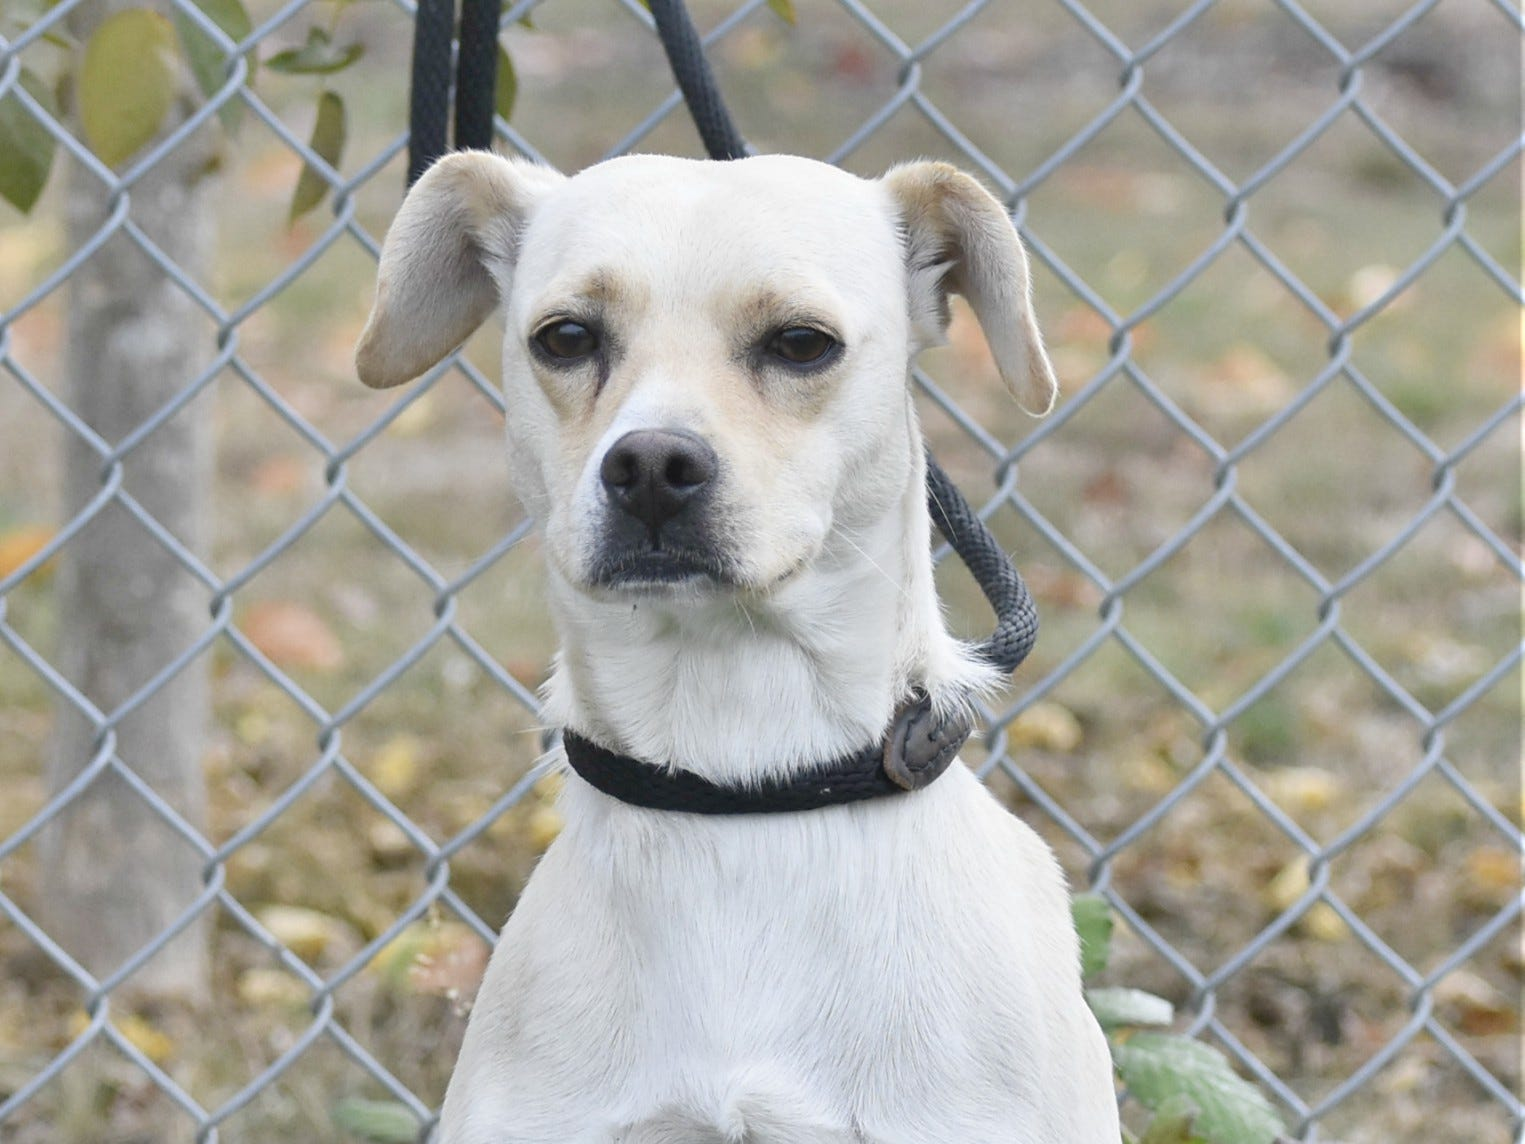 Sammy is a 2-year-old male white and yellow Beagle mix. He is just coming into his own, so he may need his human to provide a confidence boost now and then. A stable environment is what Sammy needs, as it doesn't take much to make him feel uneasy and unsure. For information, contact Marion County Dog Services at 503-588-5366.